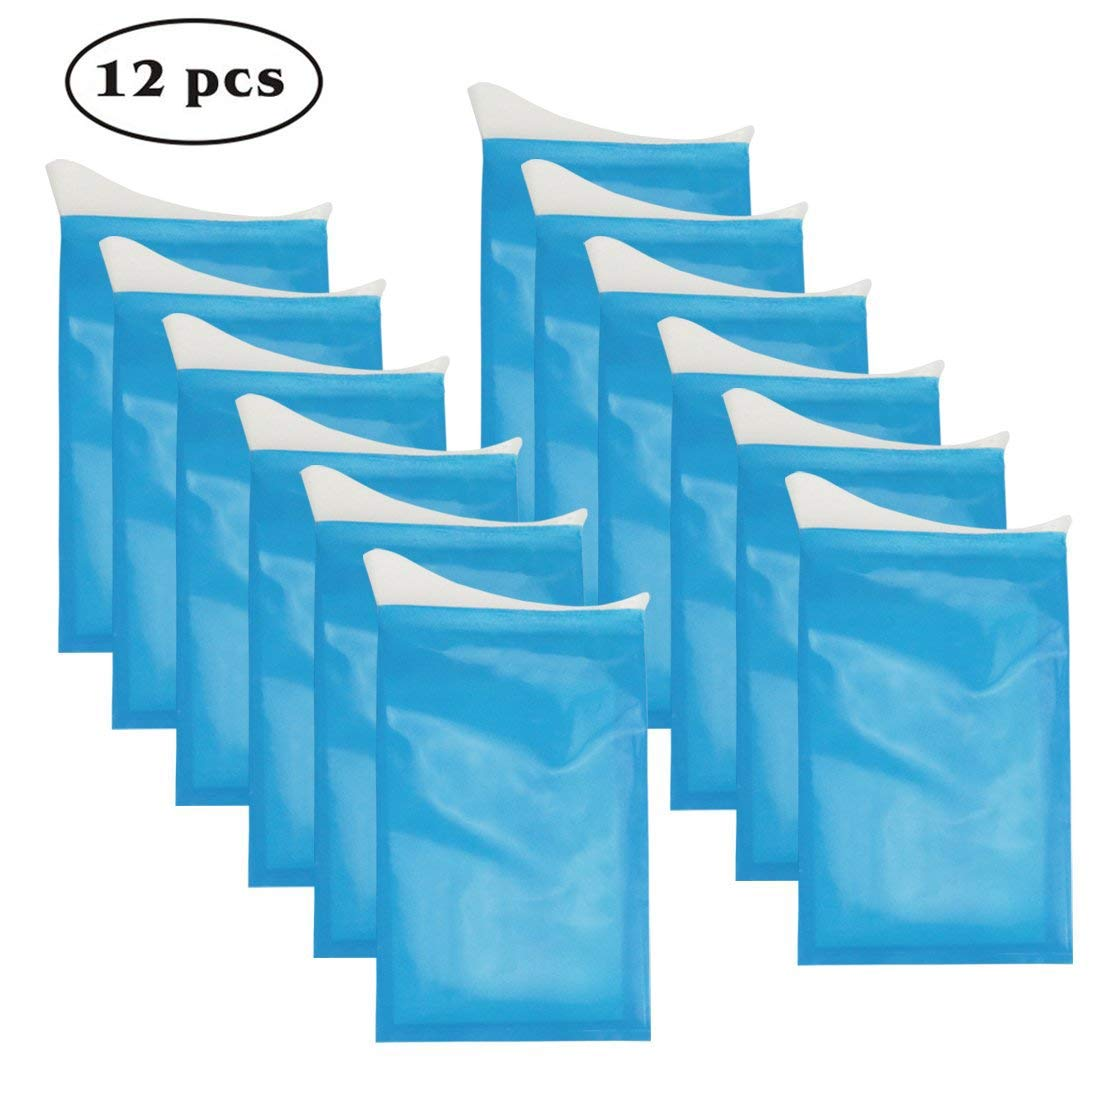 Idefair Disposable Urine Bags, 12 PCS Camping Pee Bags Portable Men Women Emergency Car Toilet Pouch for Traffic Jam Travel Inpatients Children Brief Relief Sickness Vomit by Idefair (Image #1)